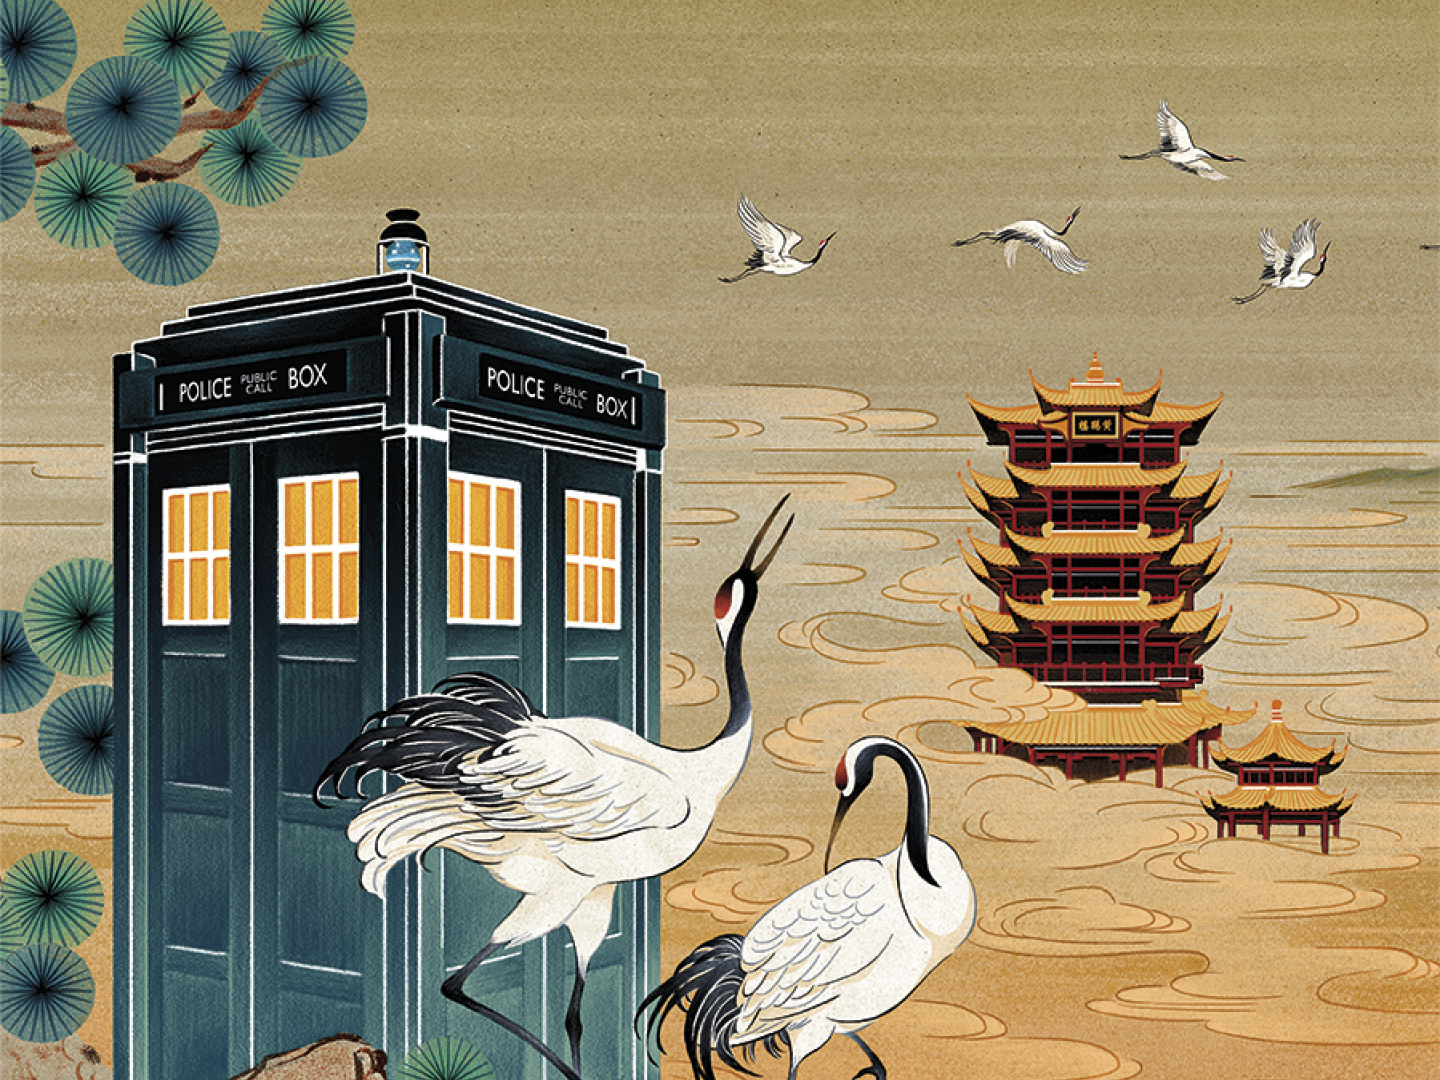 Doctor Who series 11 - China Thumbnail